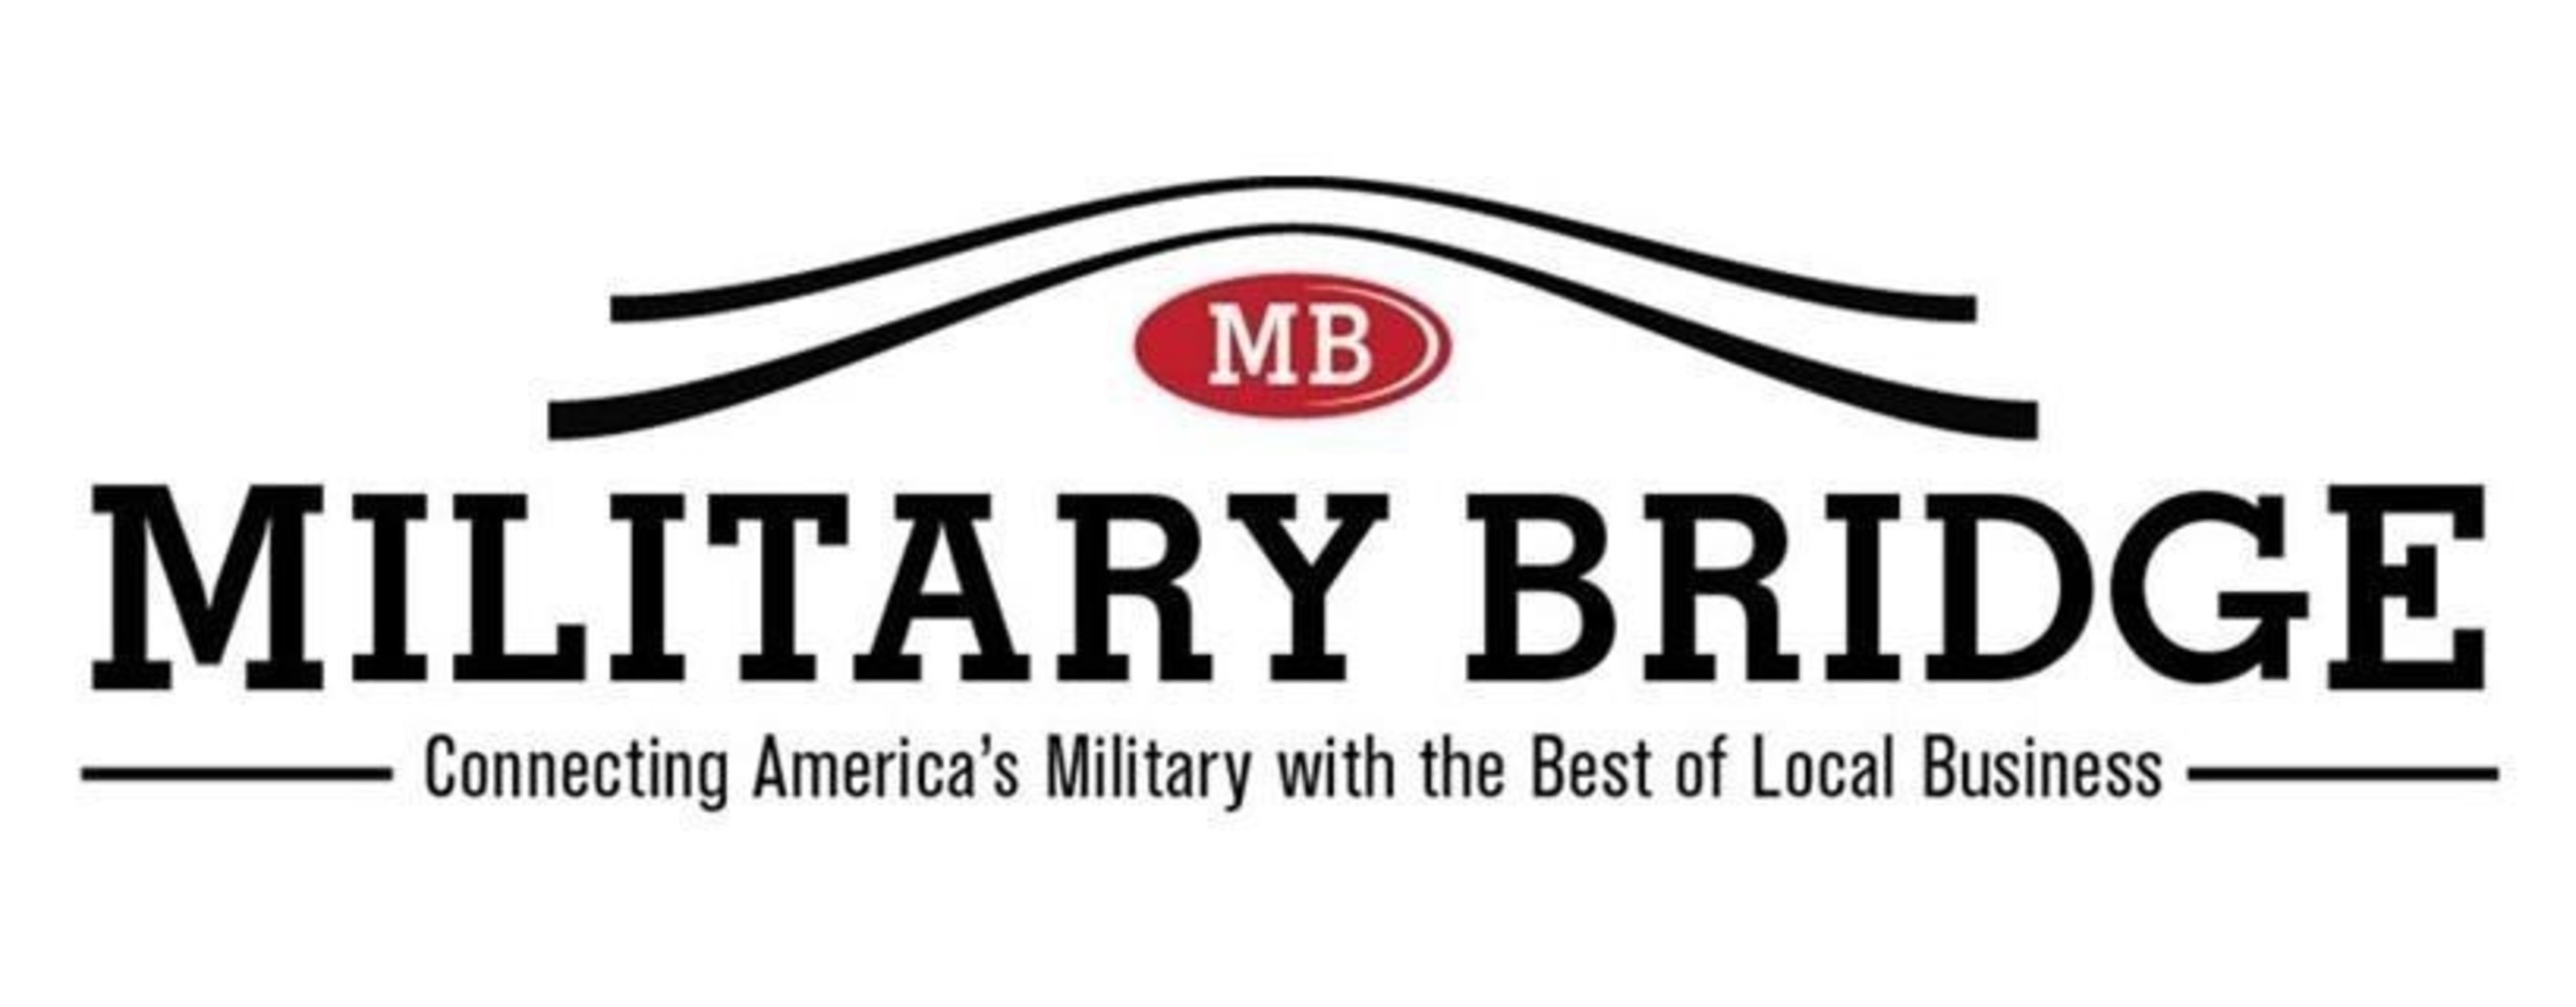 MilitaryBridge Announces Official Launch of Their Online Review & Resource Platform for Military Members and Their Families